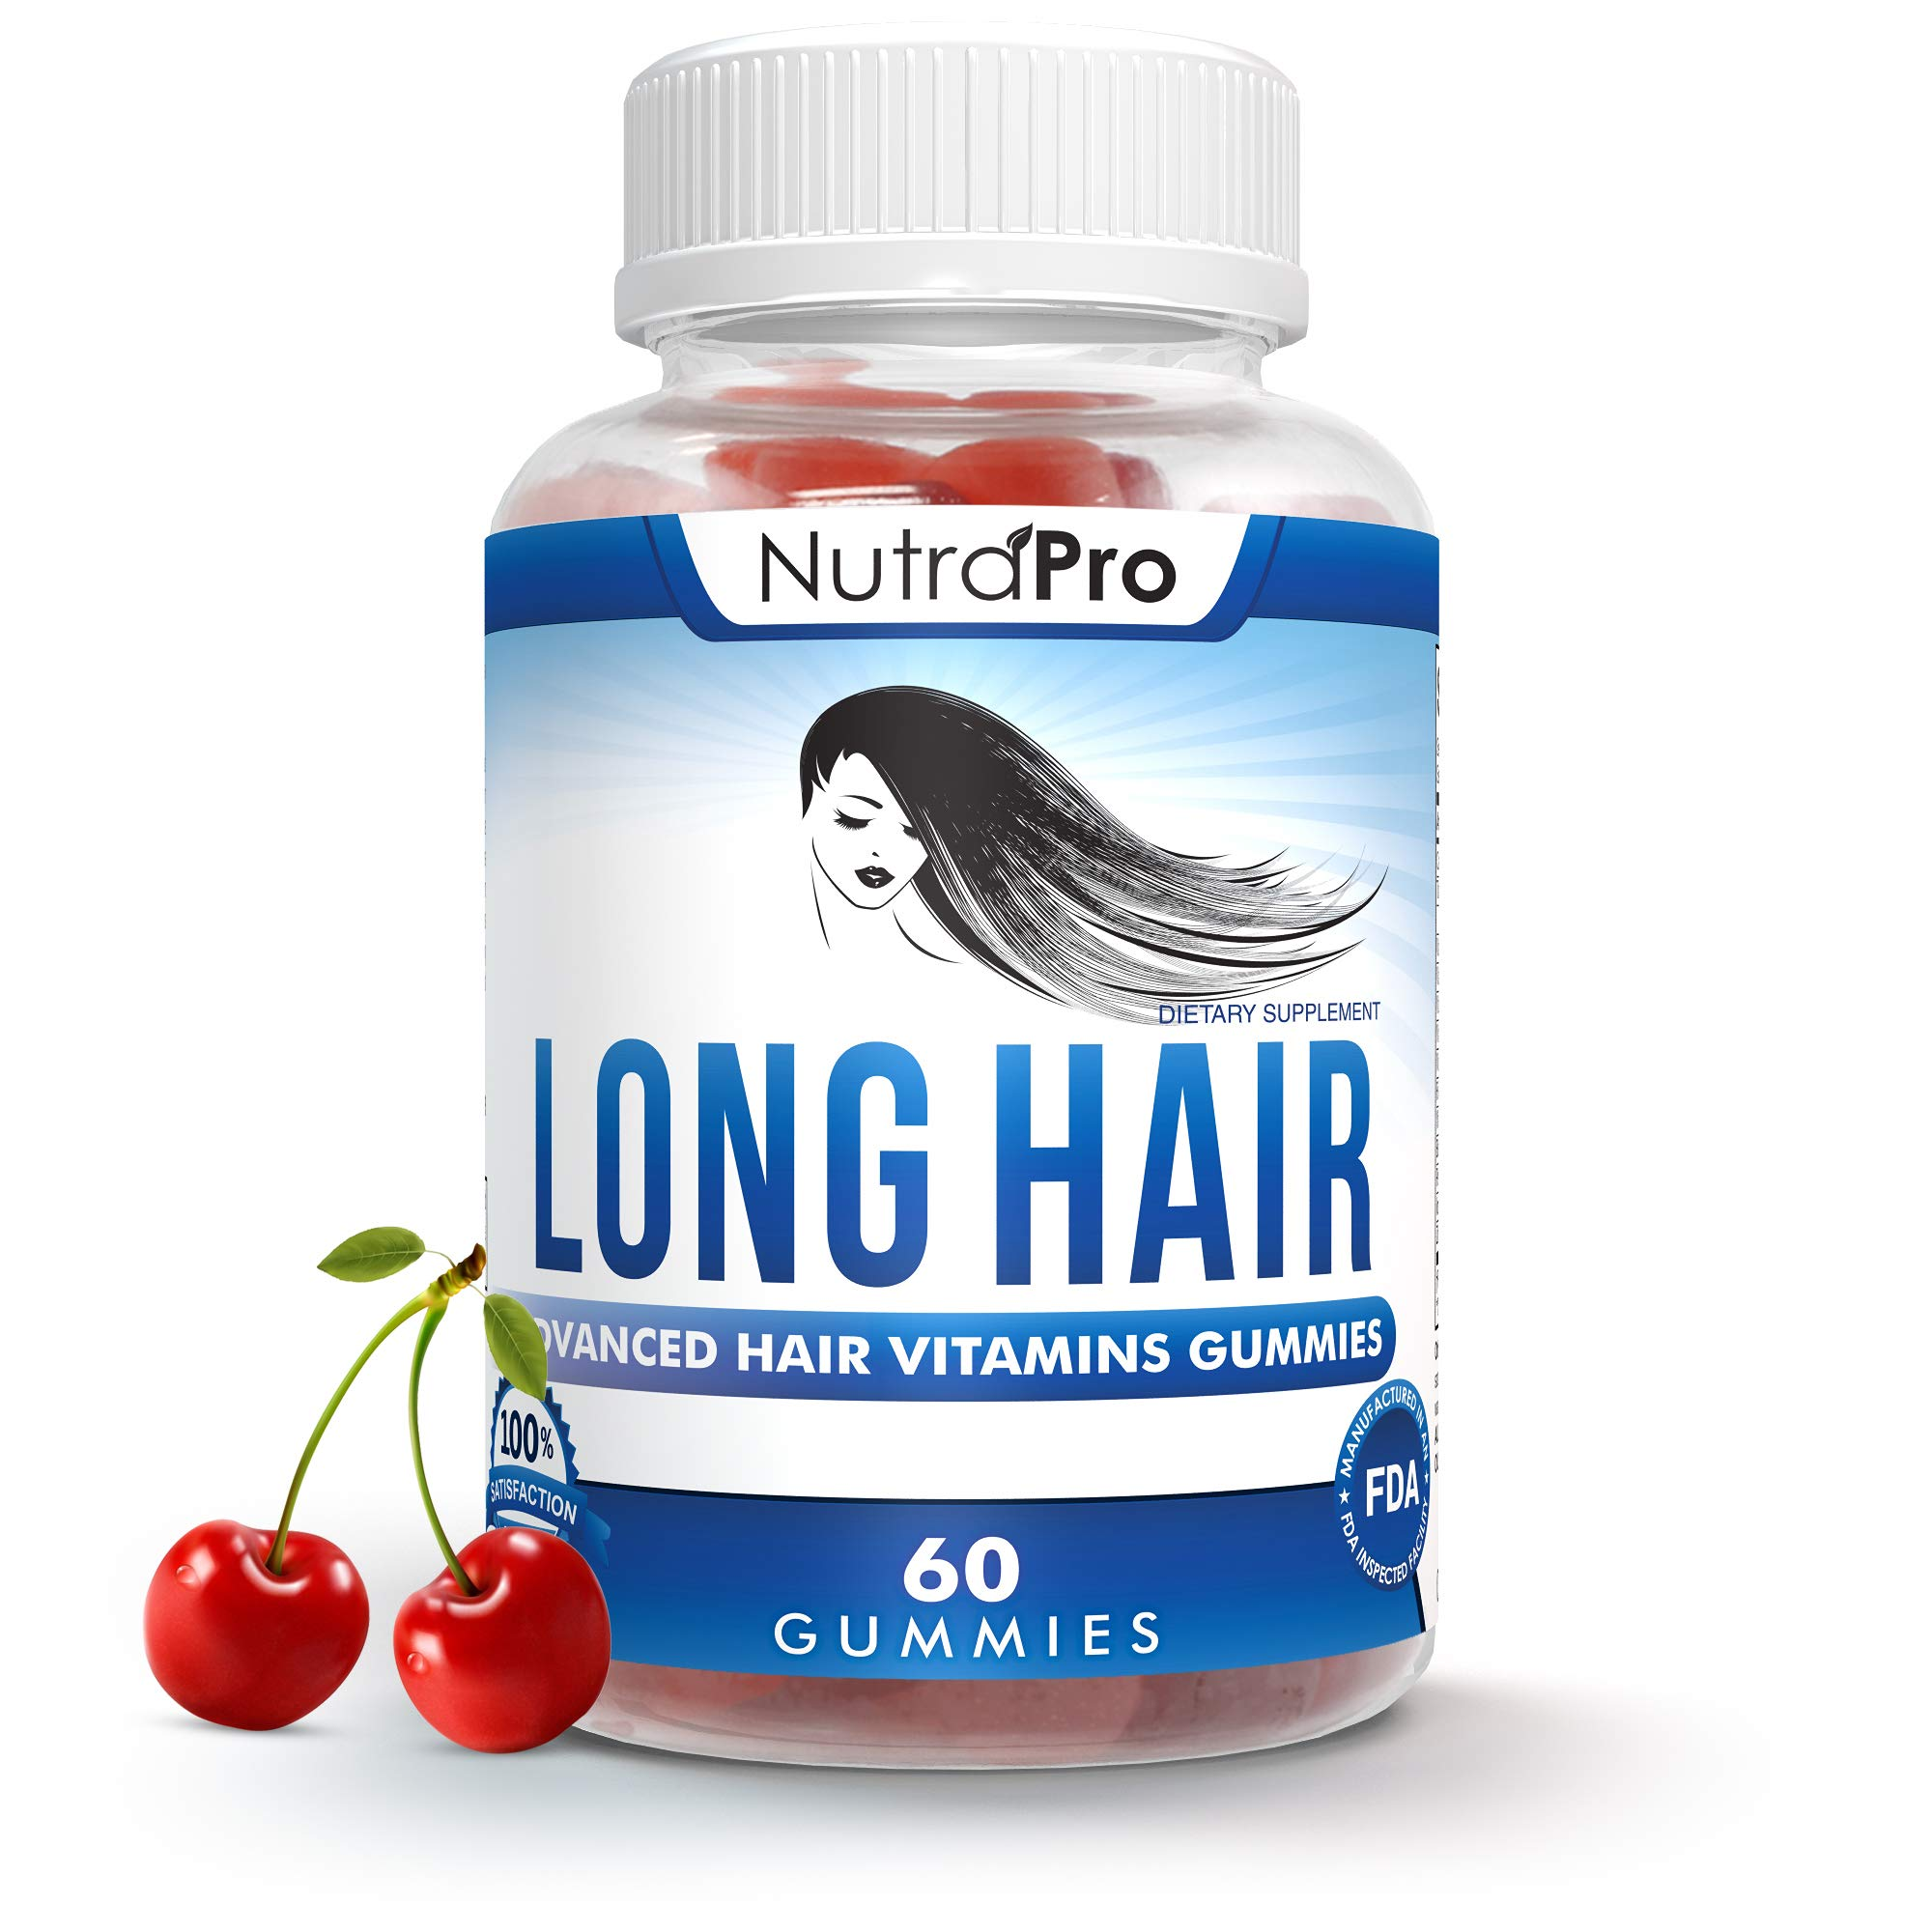 Long Hair Growth Vitamin Gummies-$19 Launch Special – Anti-Hair Loss Supplement for Fast Hair Growth of Weak, Thinning Hair – Grow Long Thick Hair & Increase Hair Volume with Biotin & Zinc Vitamins